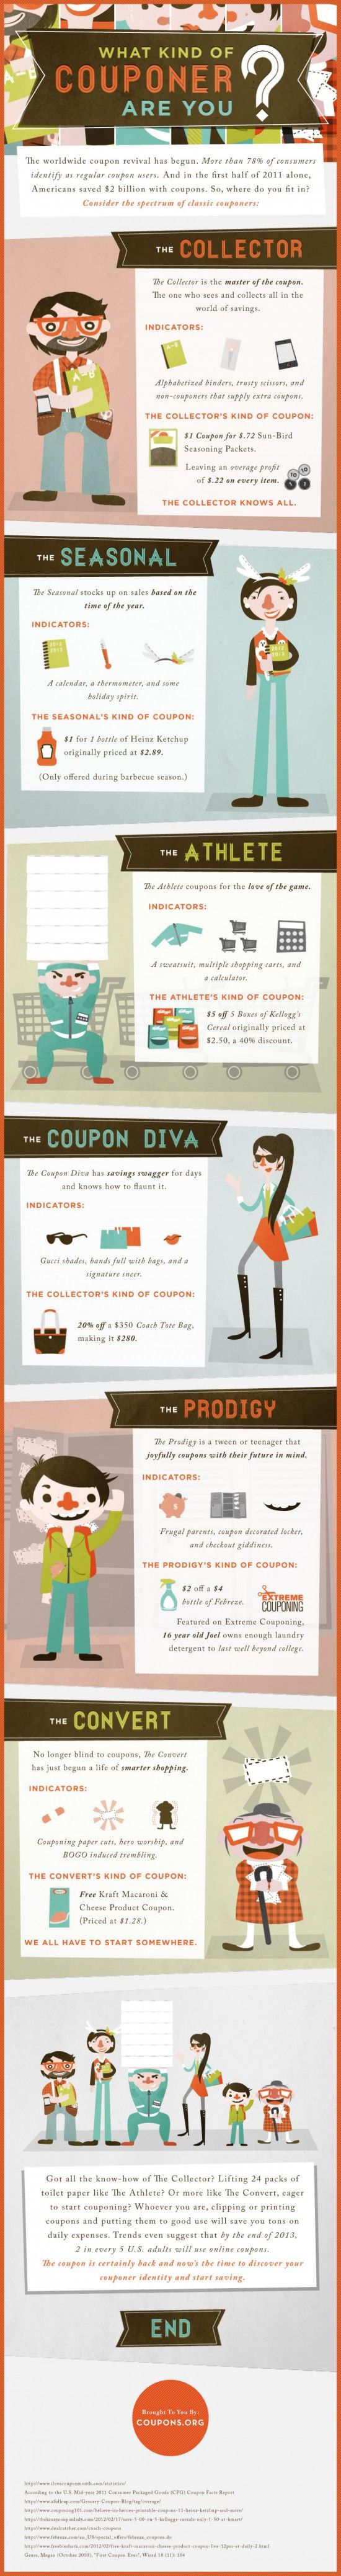 COUPONER Stereotypes